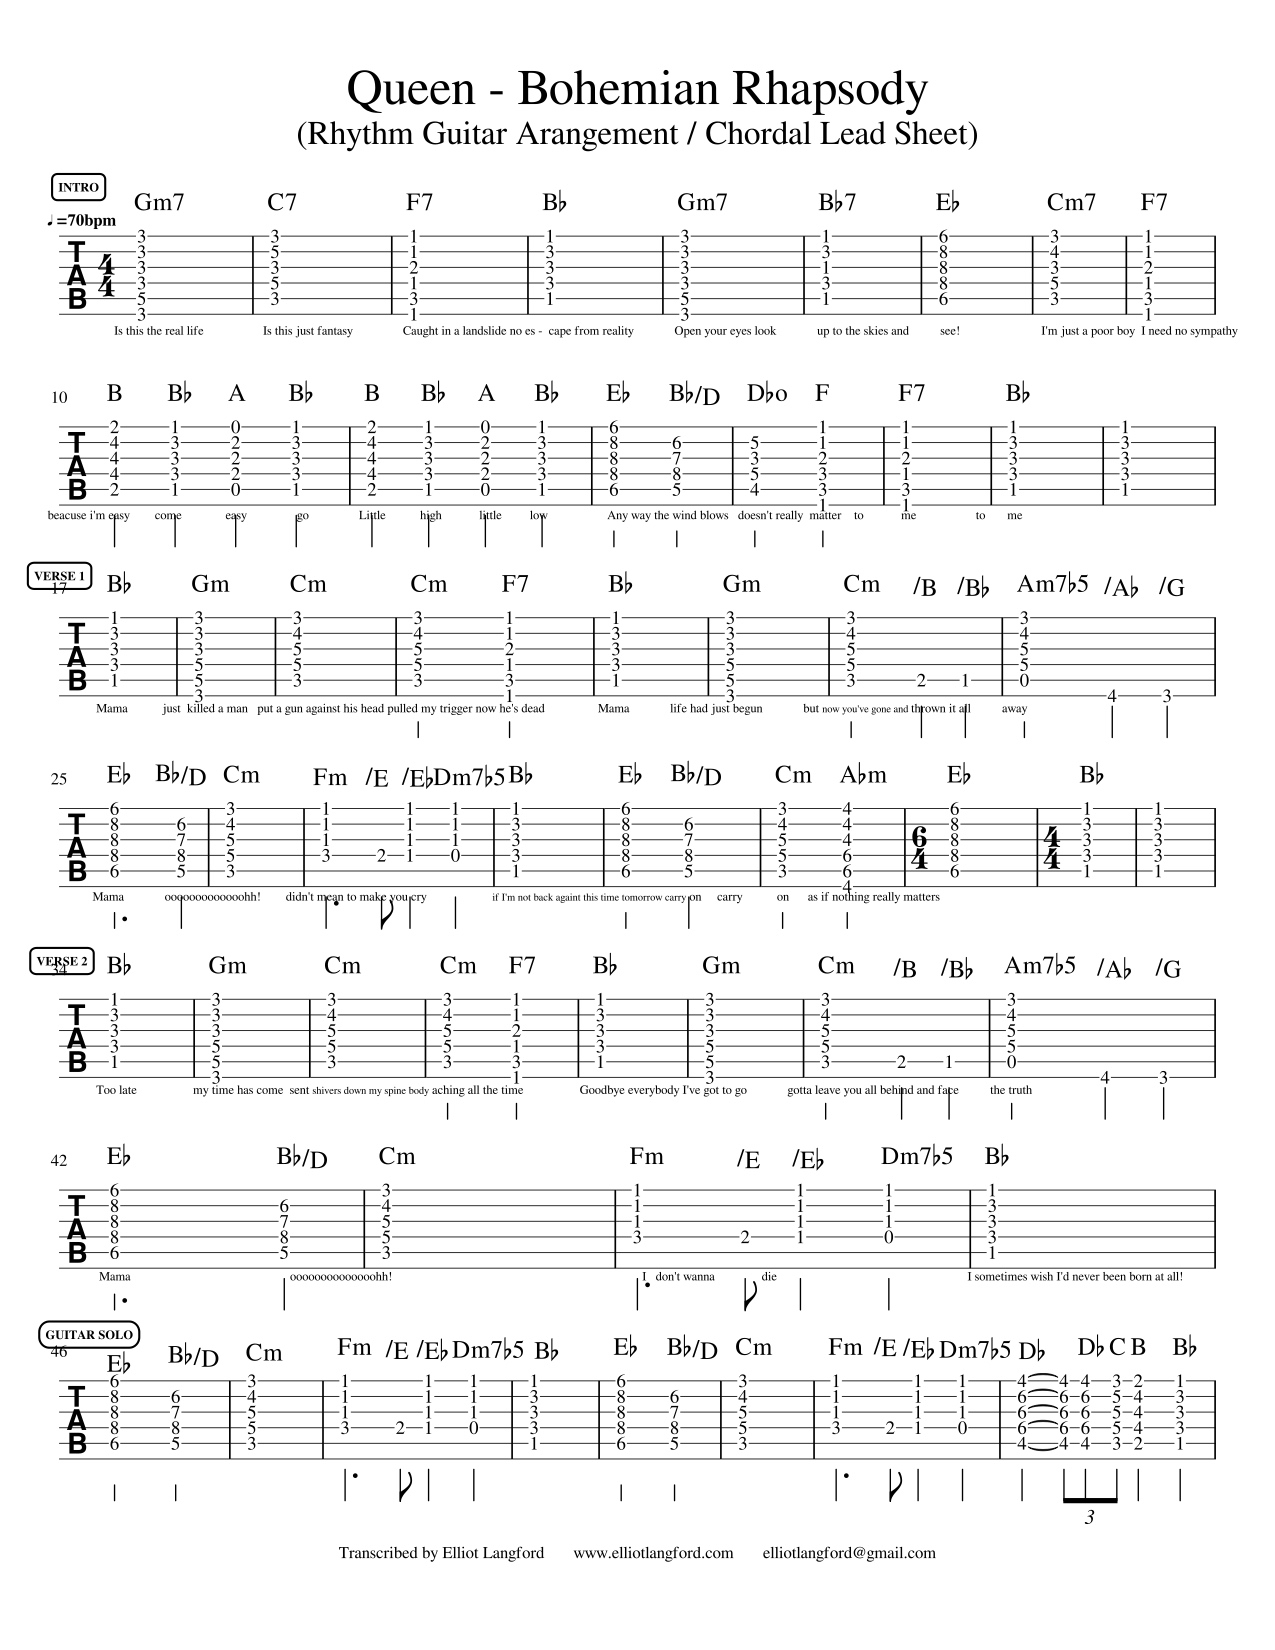 queen bohemian rhapsody acoustic rhythm guitar chords pdf chordal lead sheet elliot langford